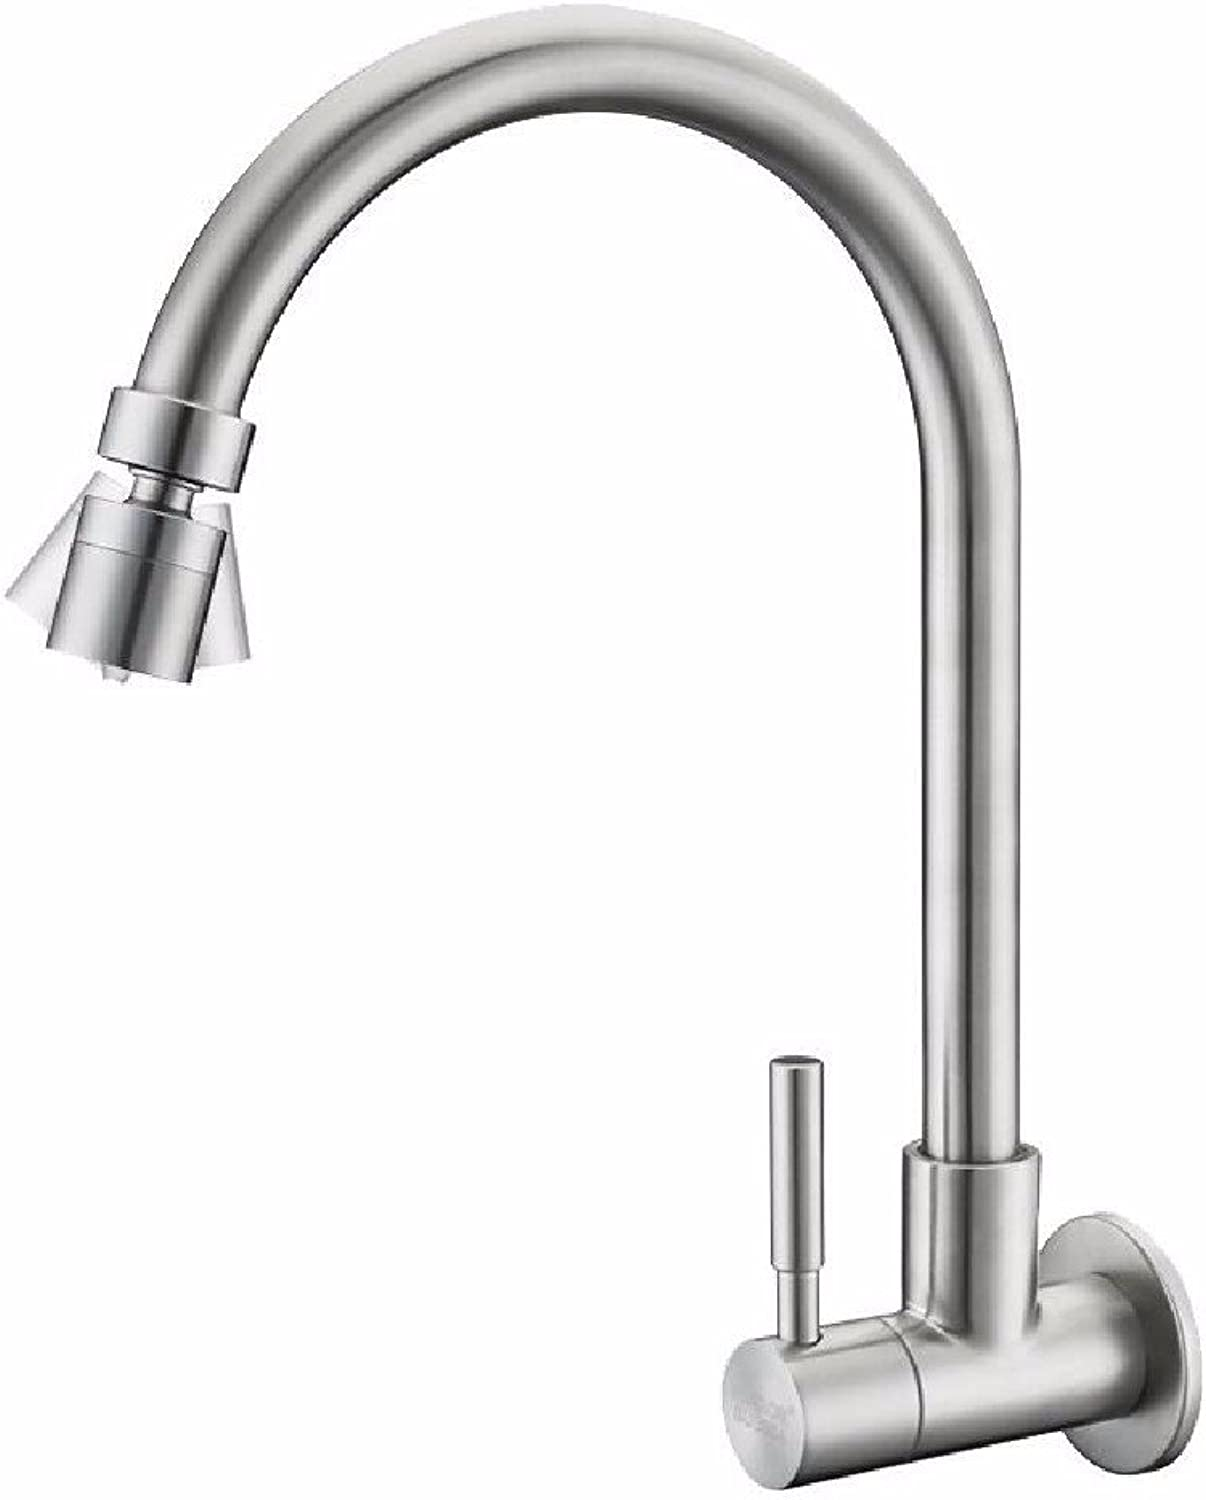 In-Wall Faucet Single Cold 304 Stainless Steel Kitchen Sink Balcony mop Pool can be redated